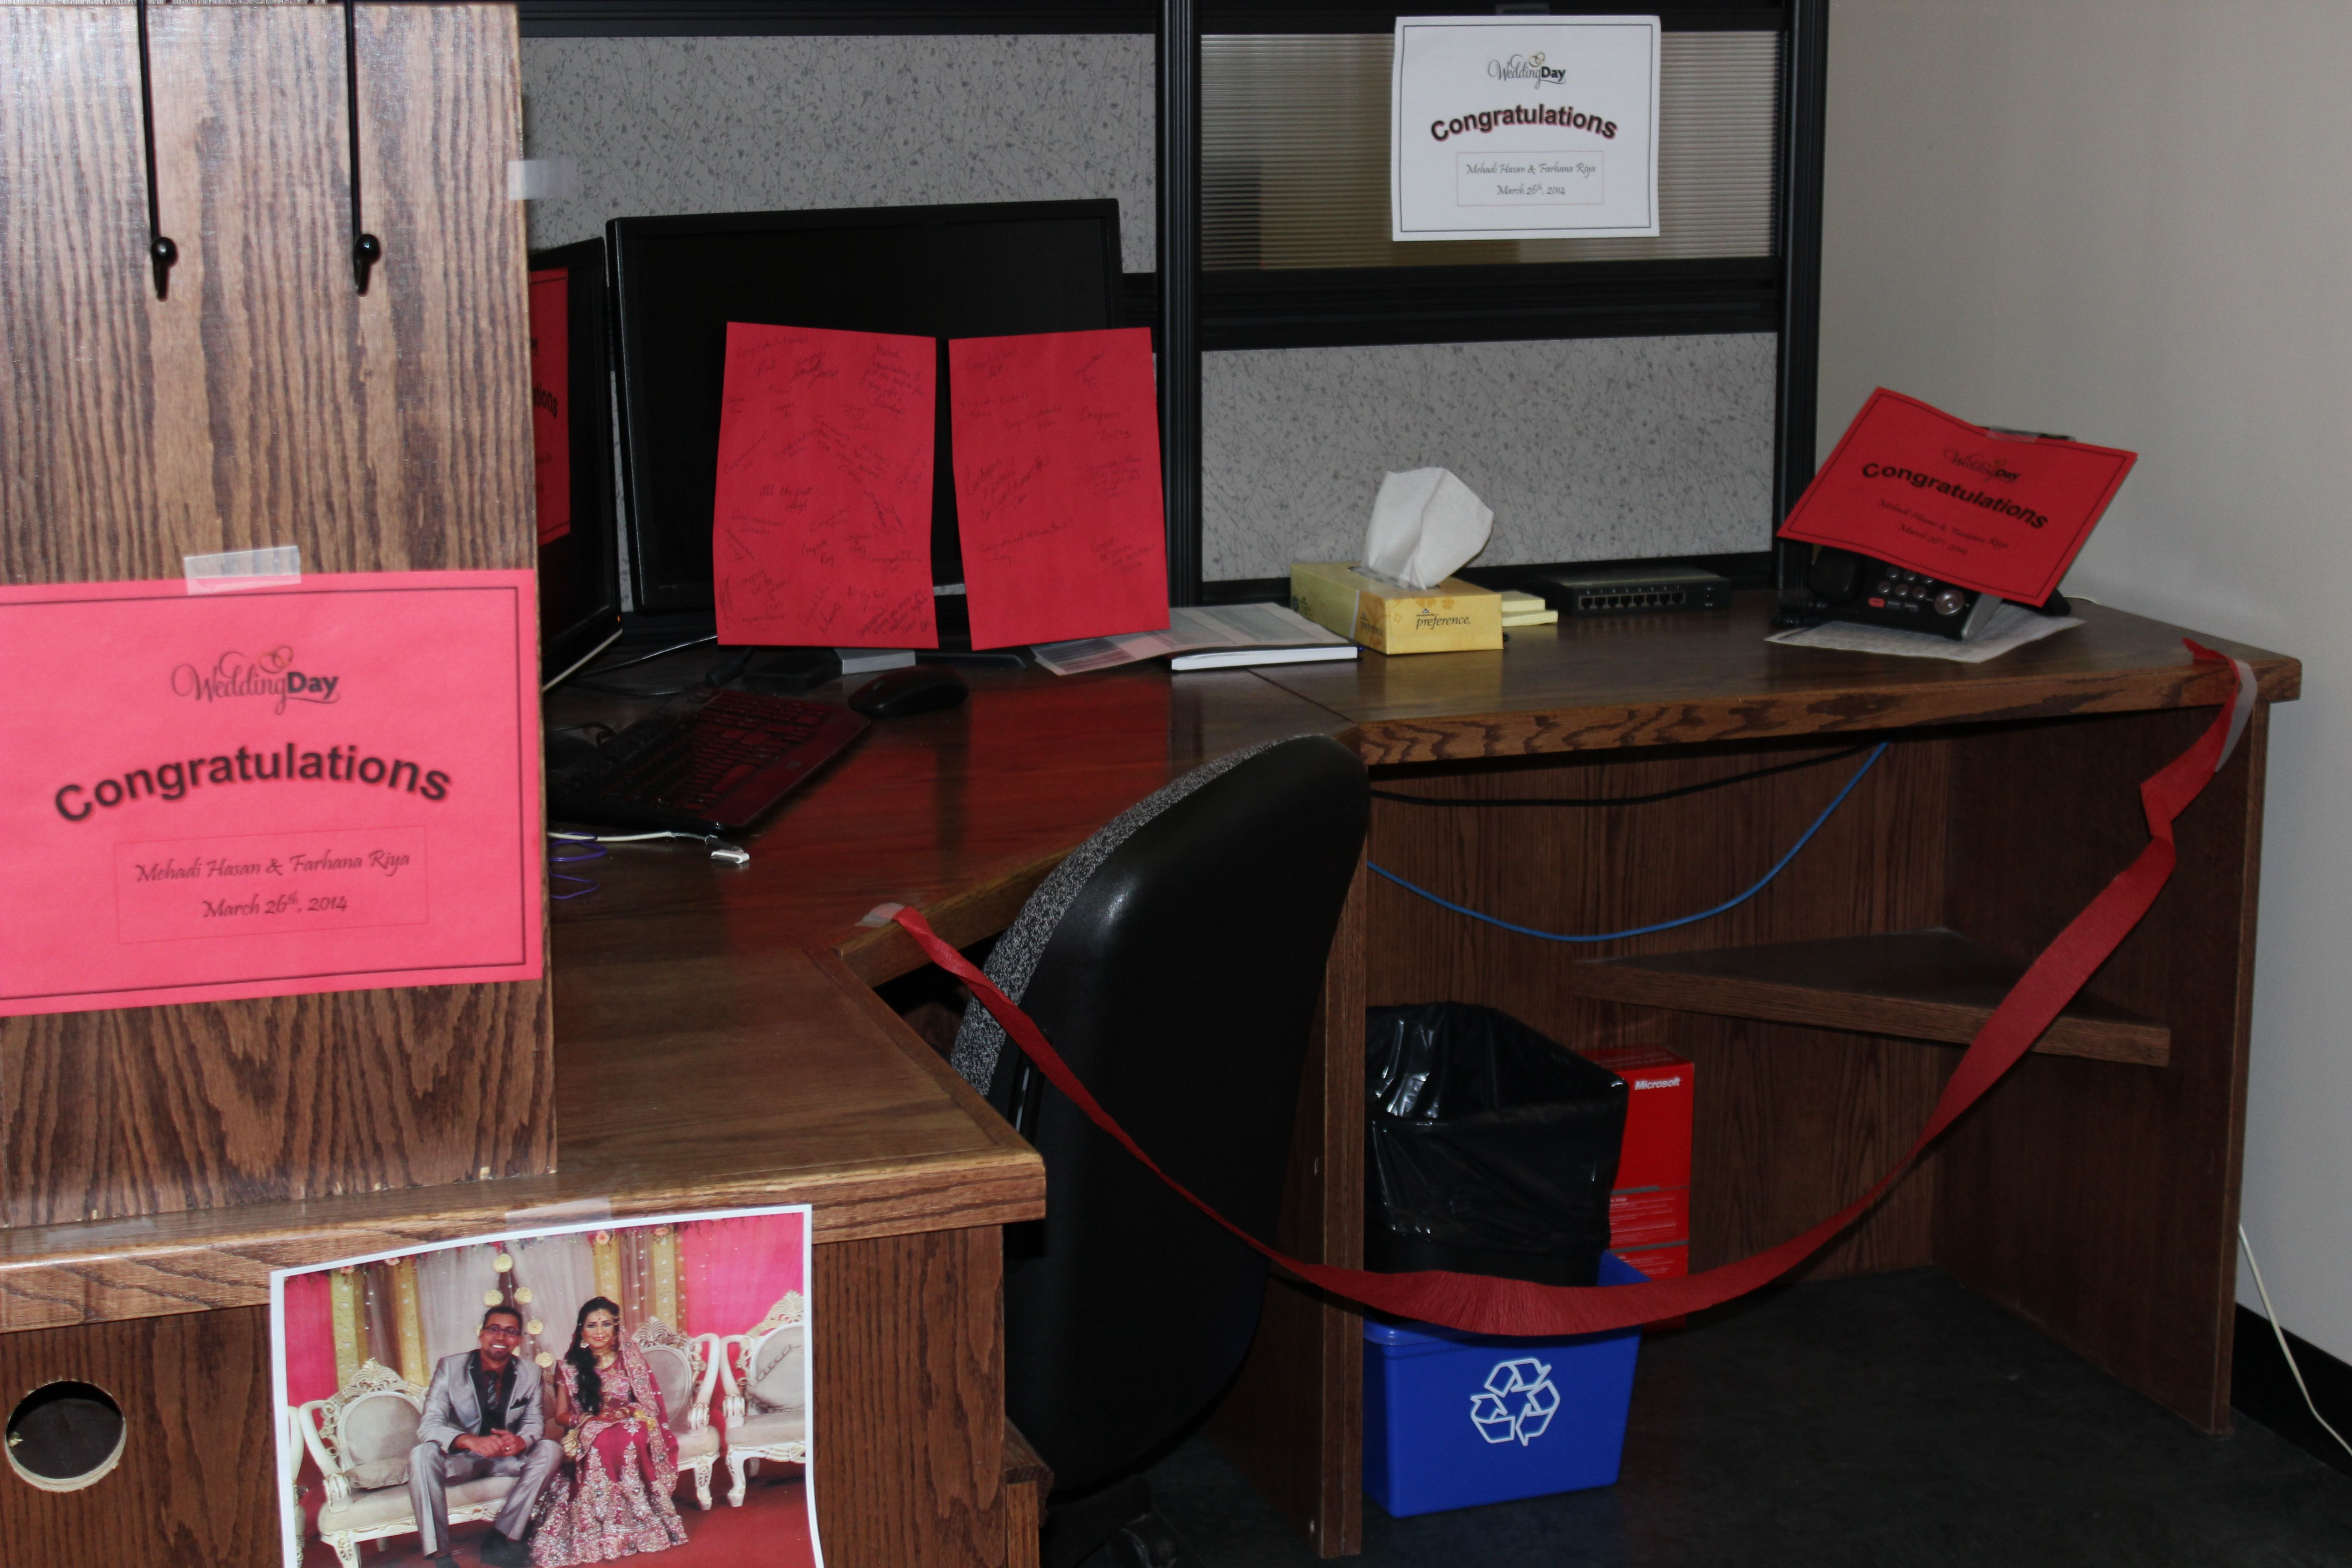 Congratulating our coworker on his wedding. Desk Surprise